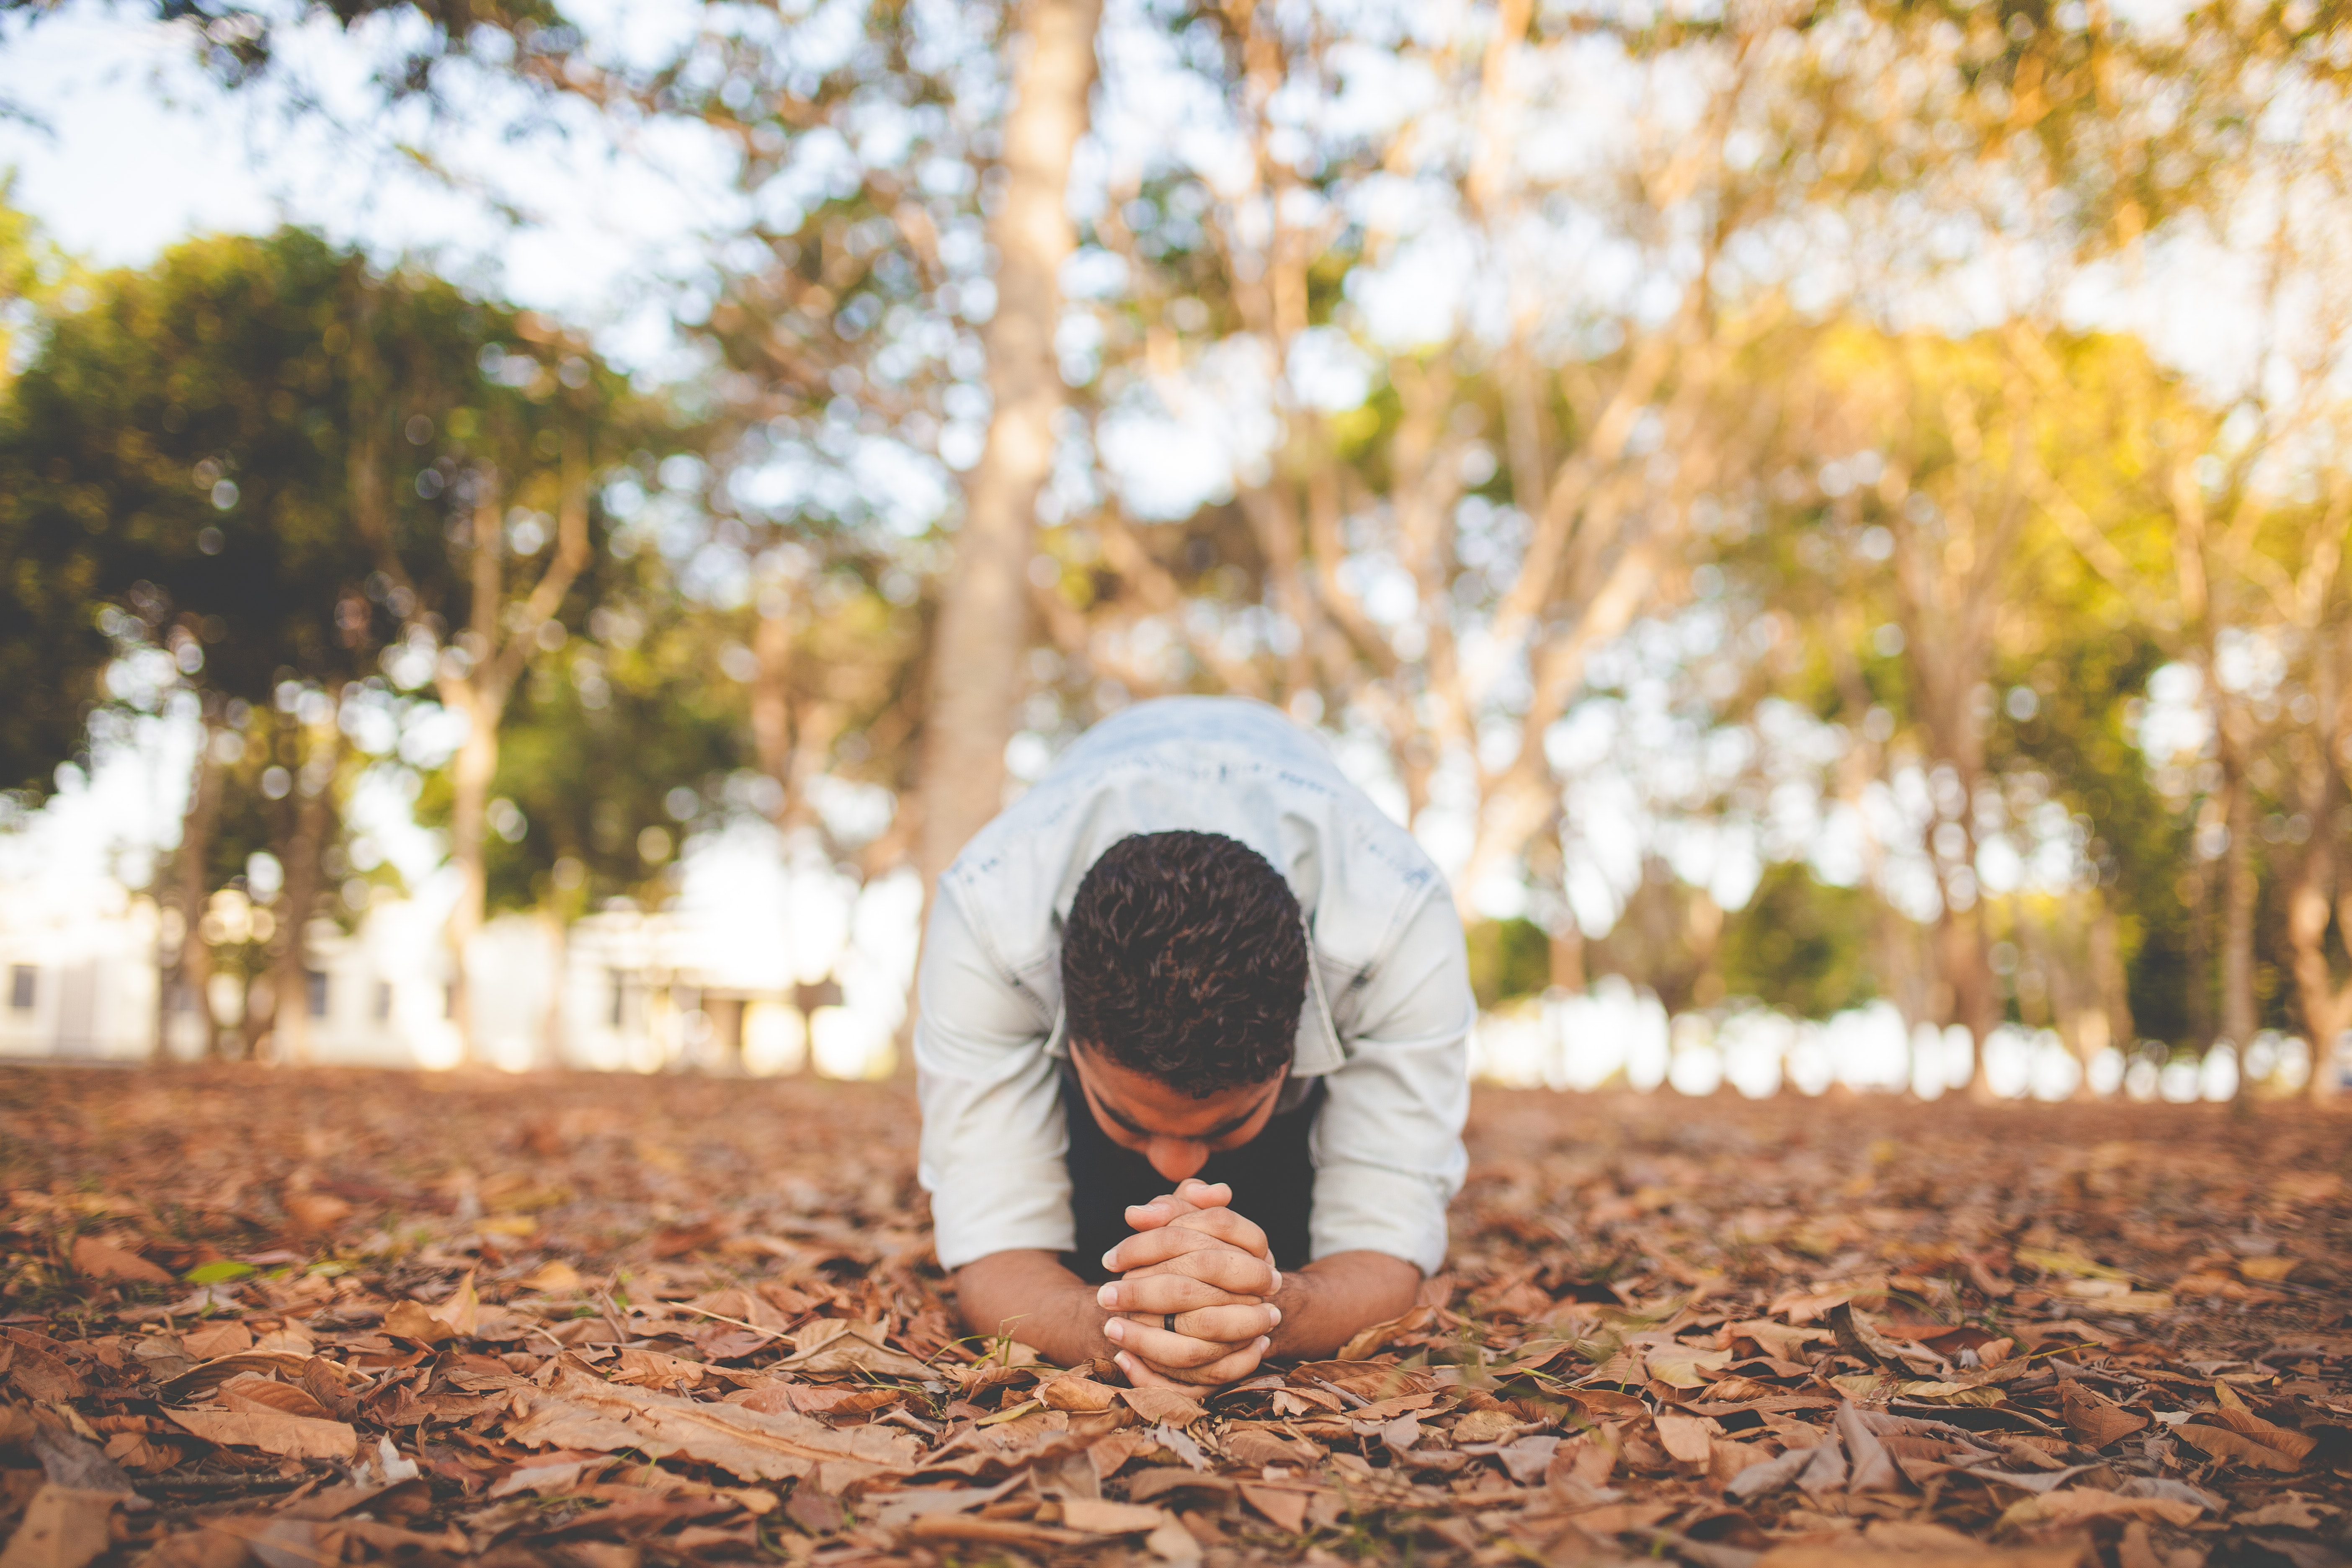 Man kneeling in leaves the ground with hands folded in prayer